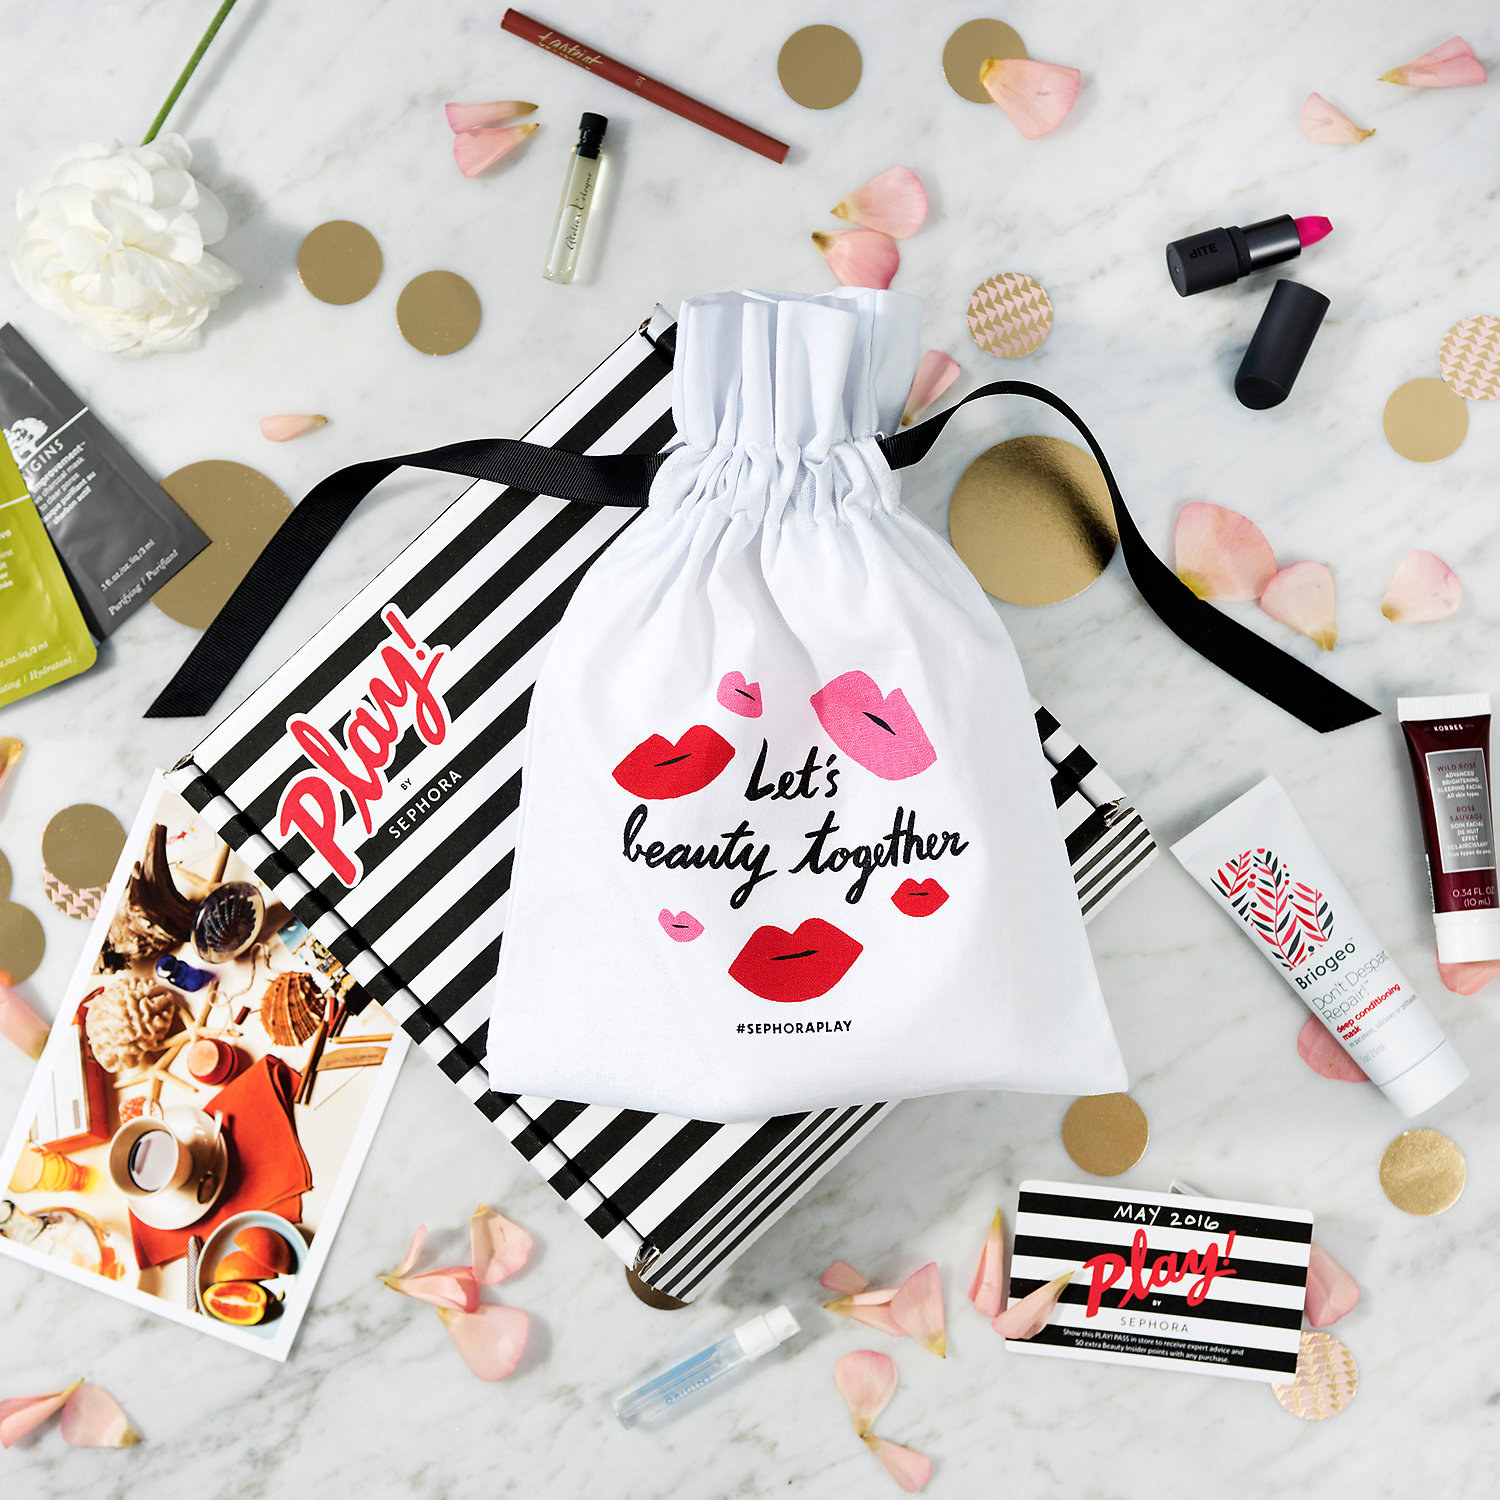 21 Beauty Subscription Boxes To Treat Yourself To This Year